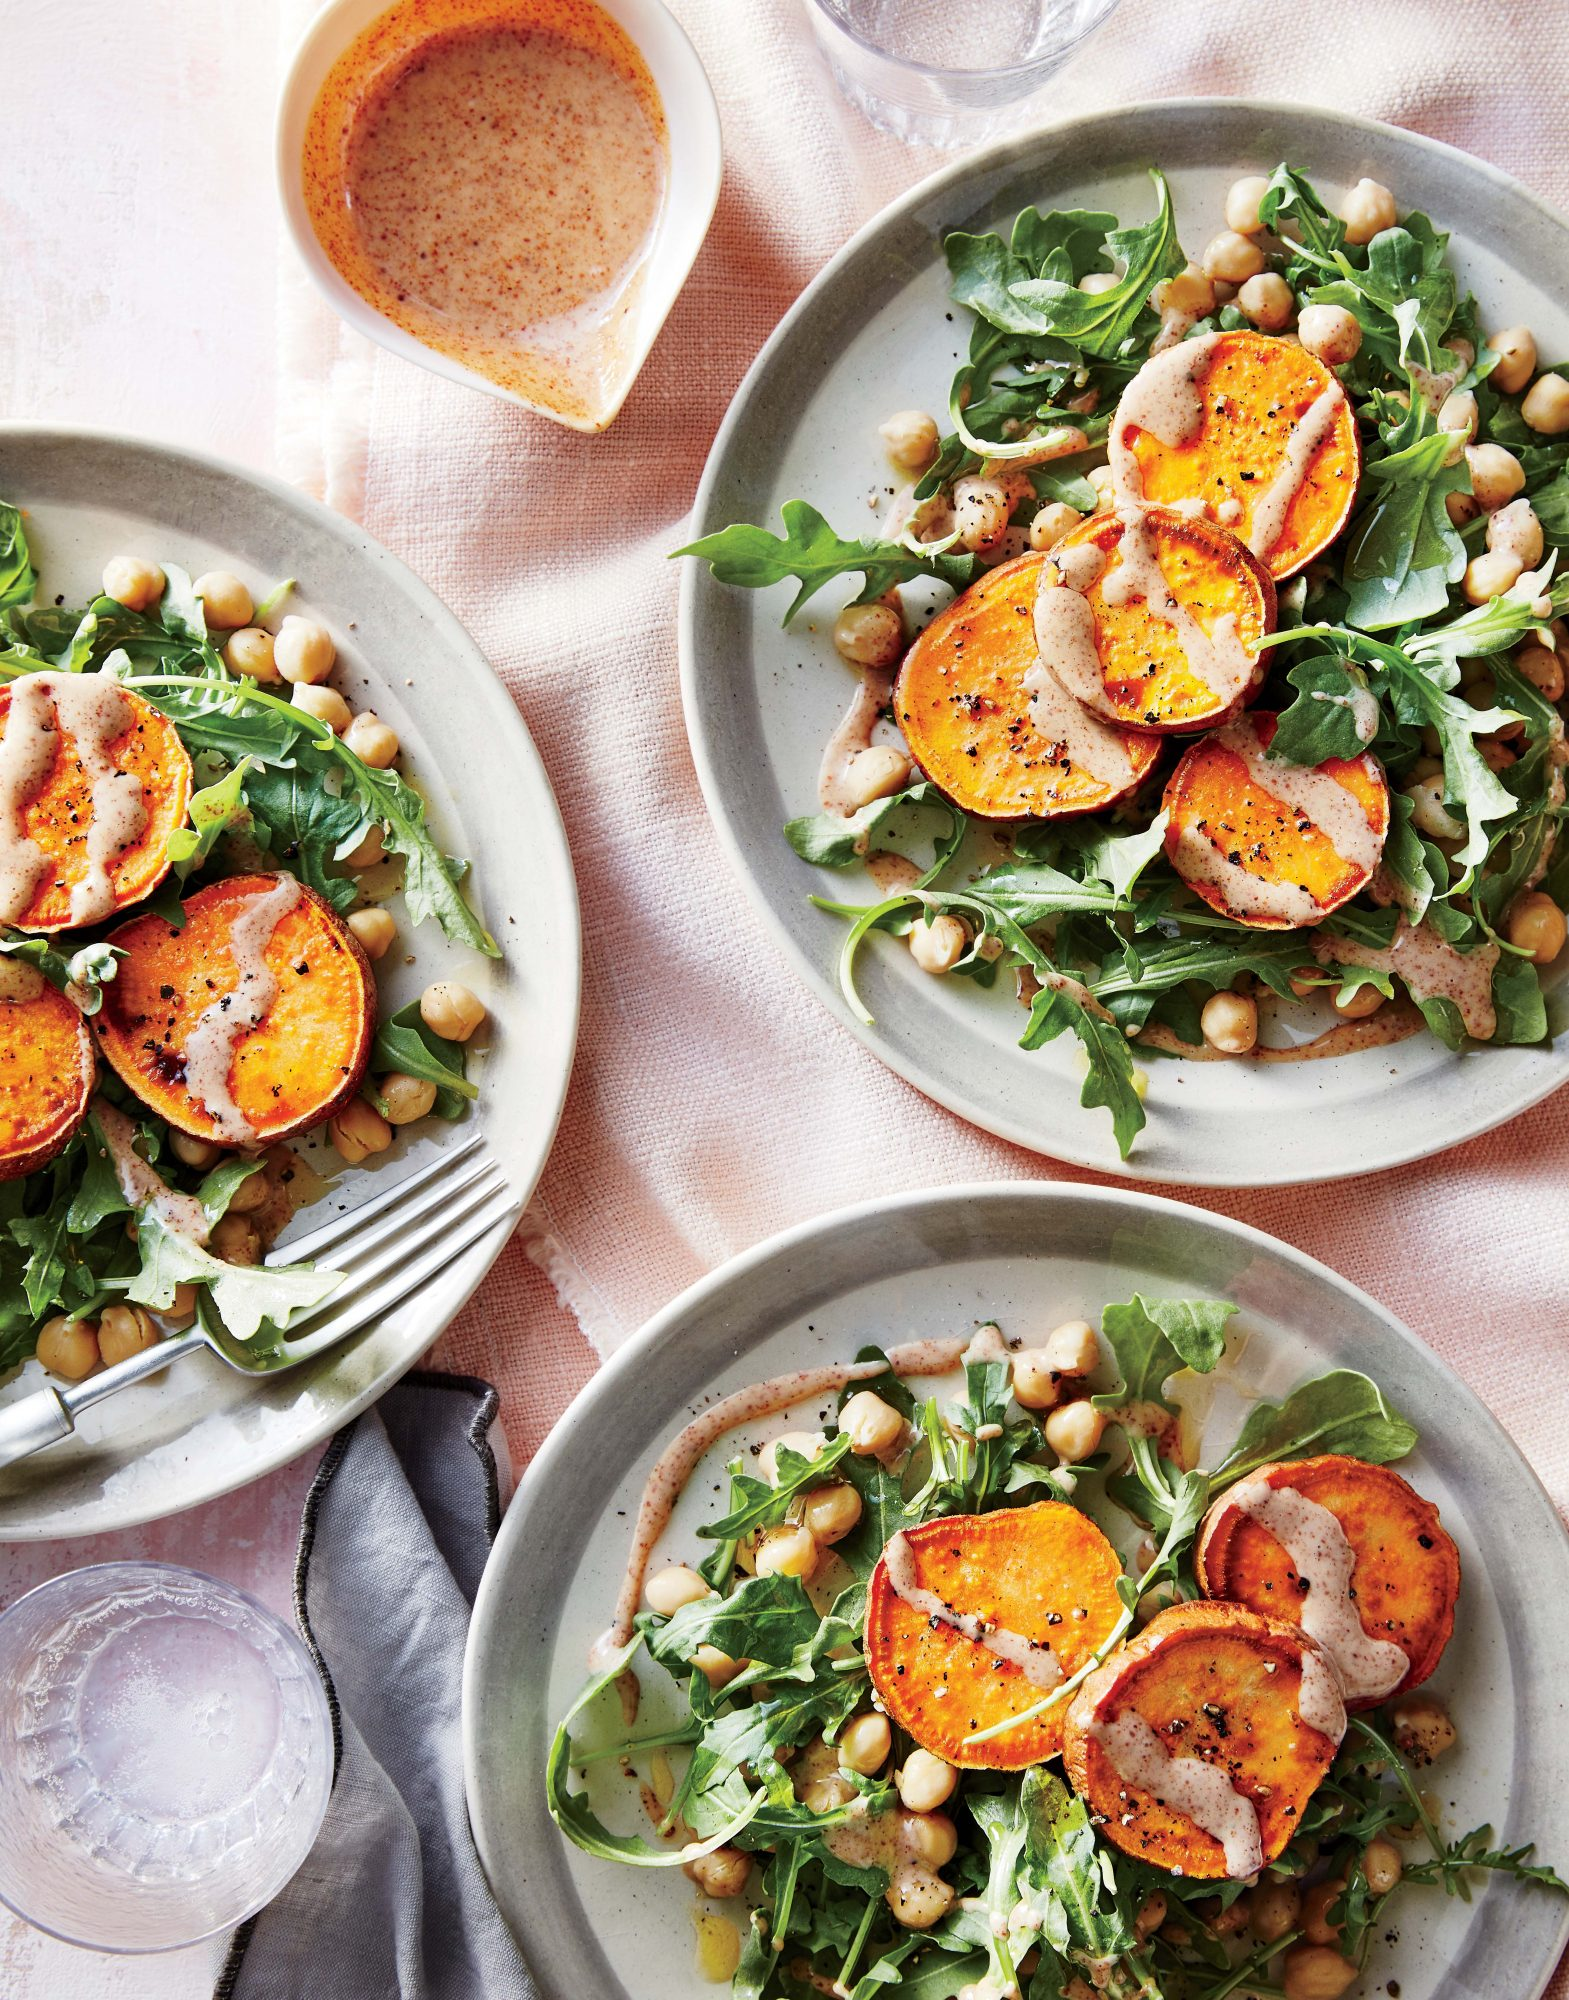 Sweet Potato Medallions with Almond Sauce and Chickpea Salad